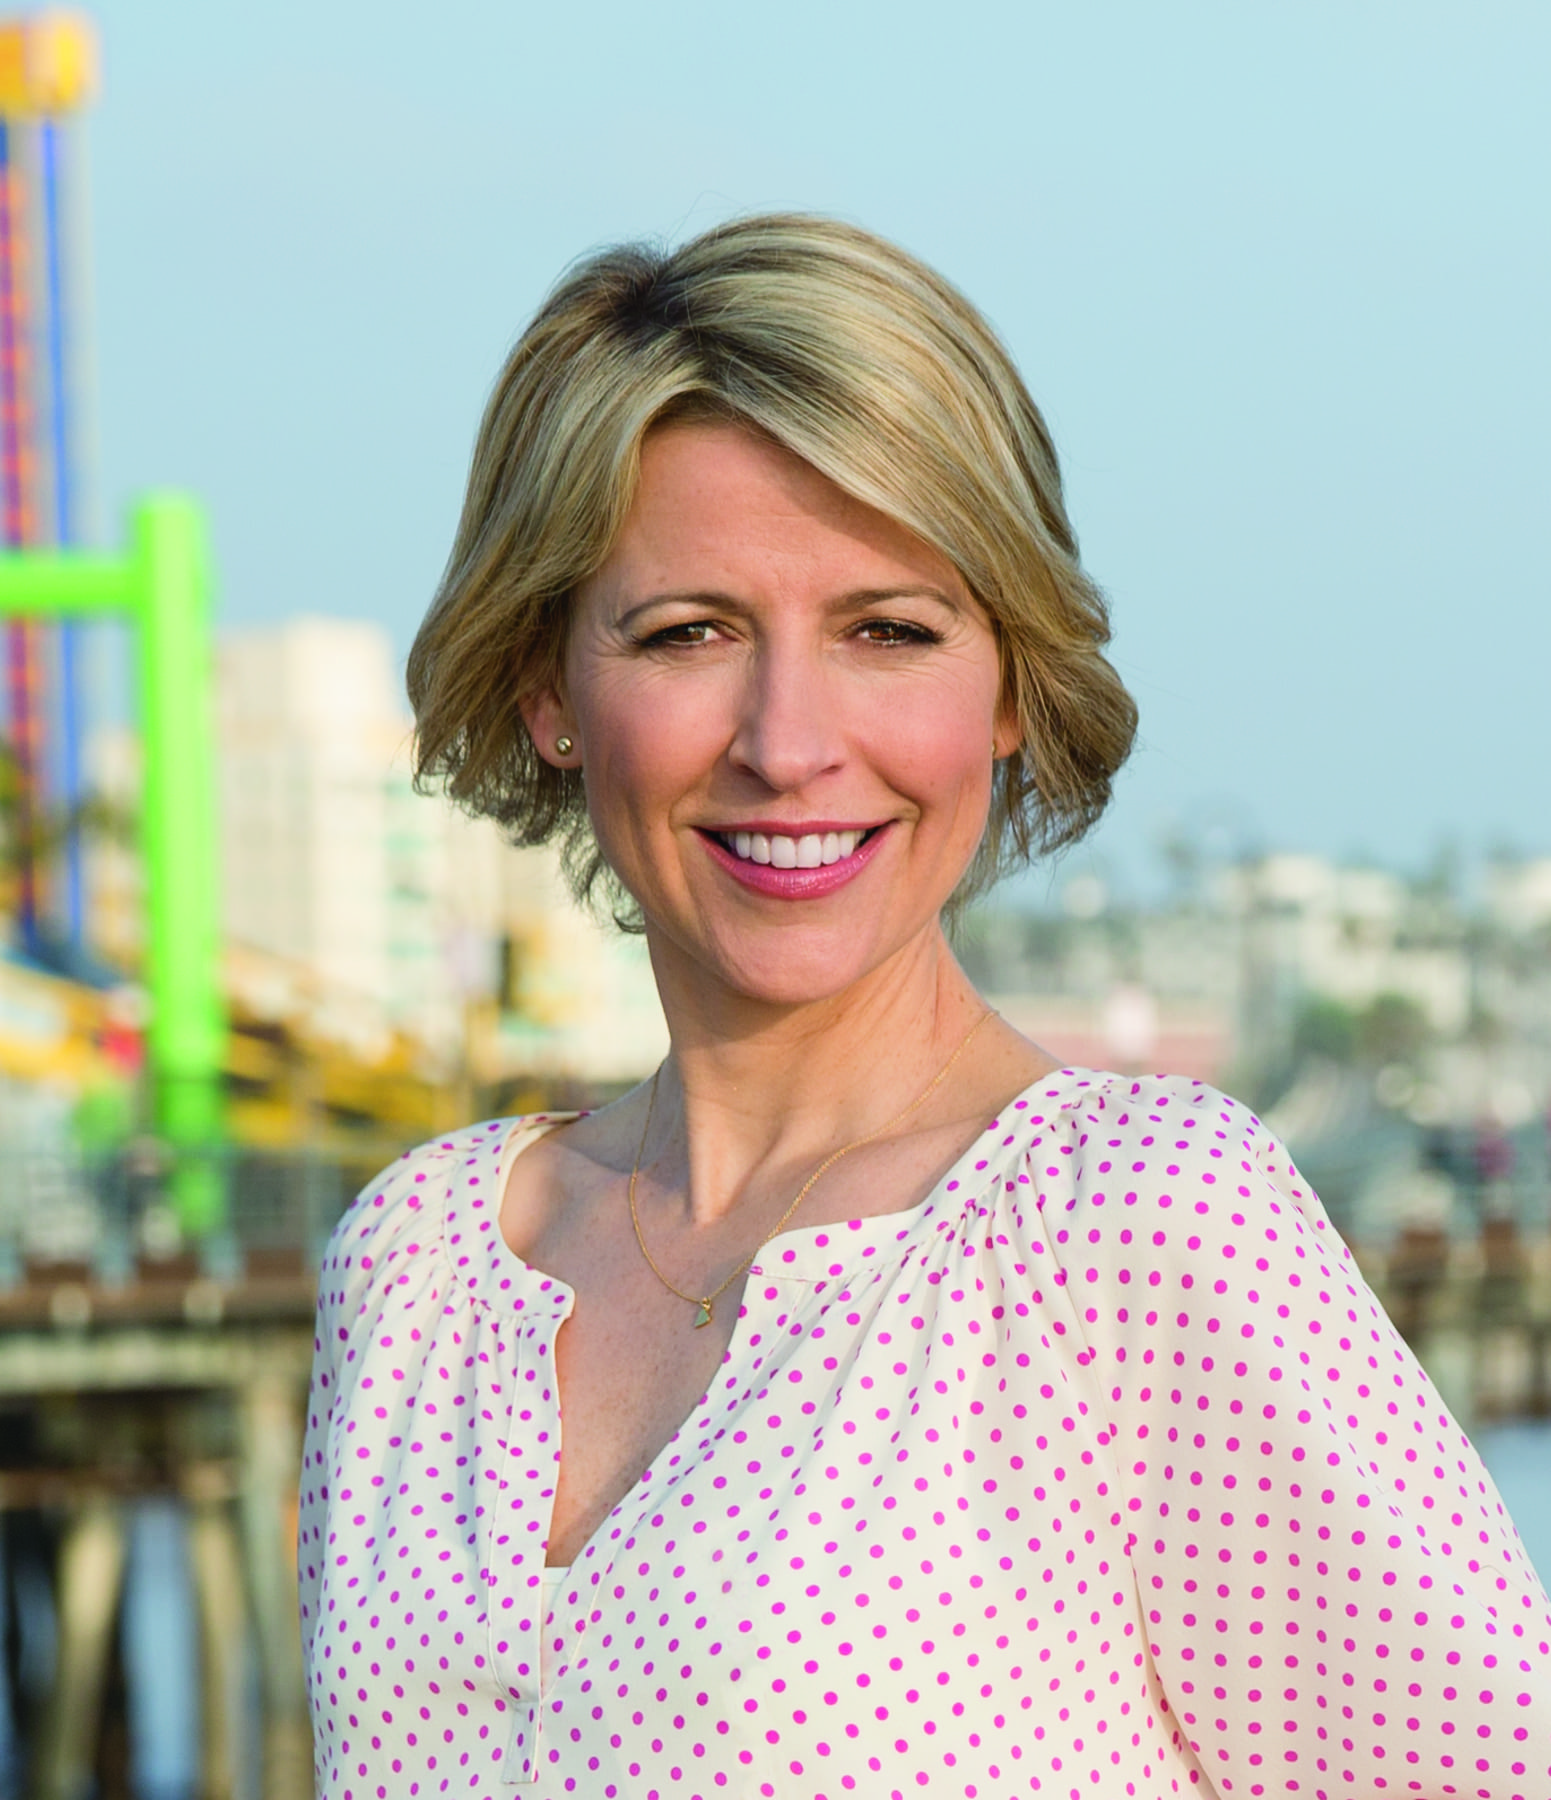 Samantha Brown Is A World Renowned Traveler And American Television Host Notable For Her Work As The Of Many Travel Channel Shows Including Great